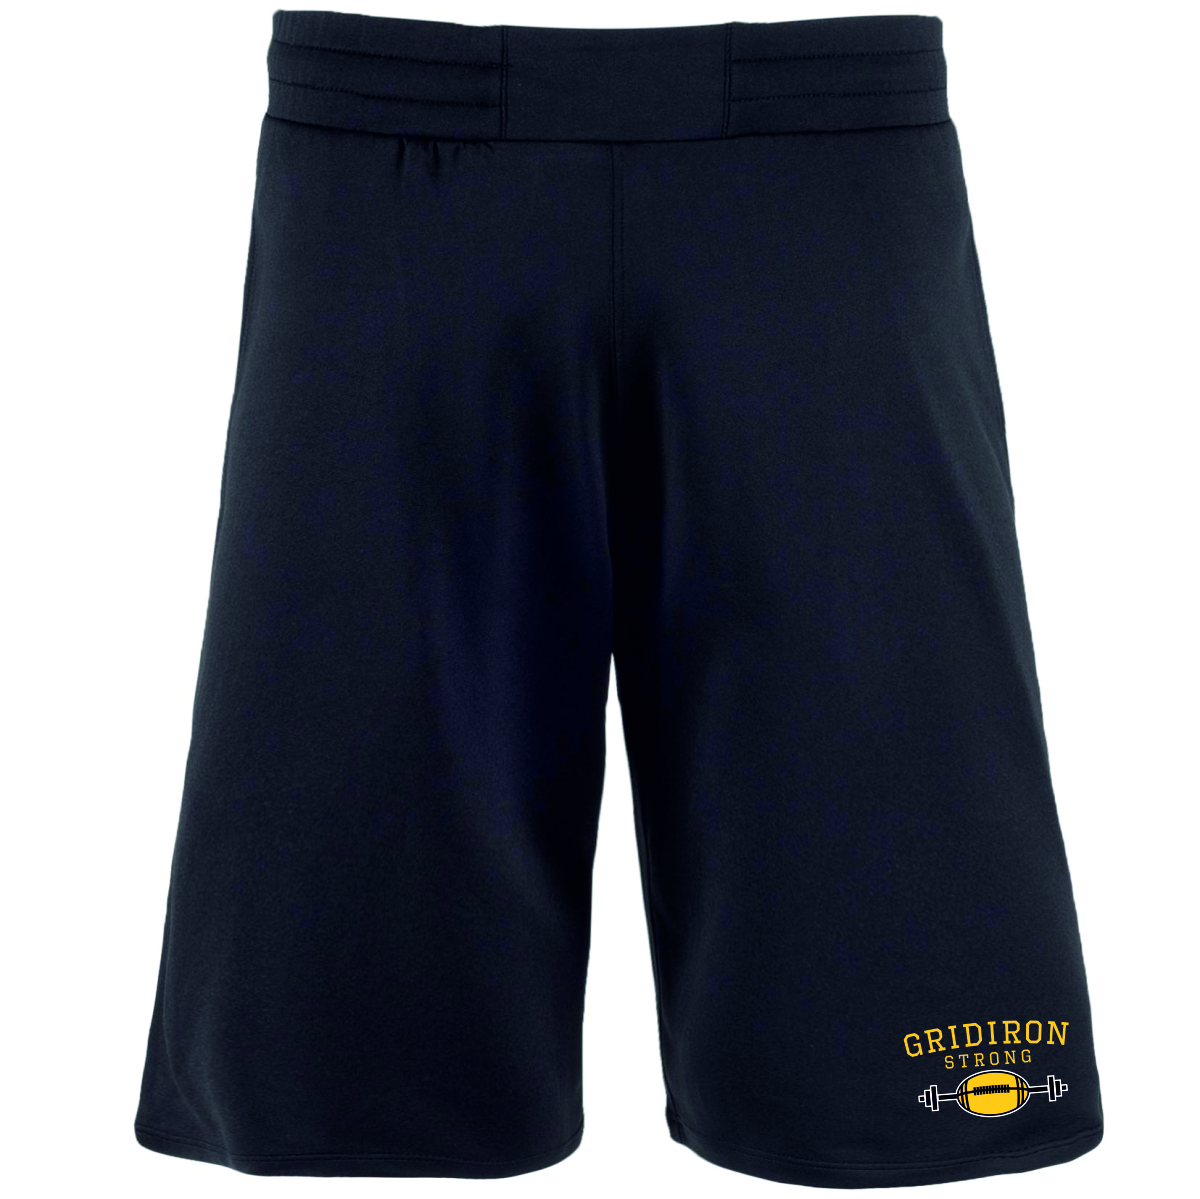 training shorts, gridiron strong, shorts